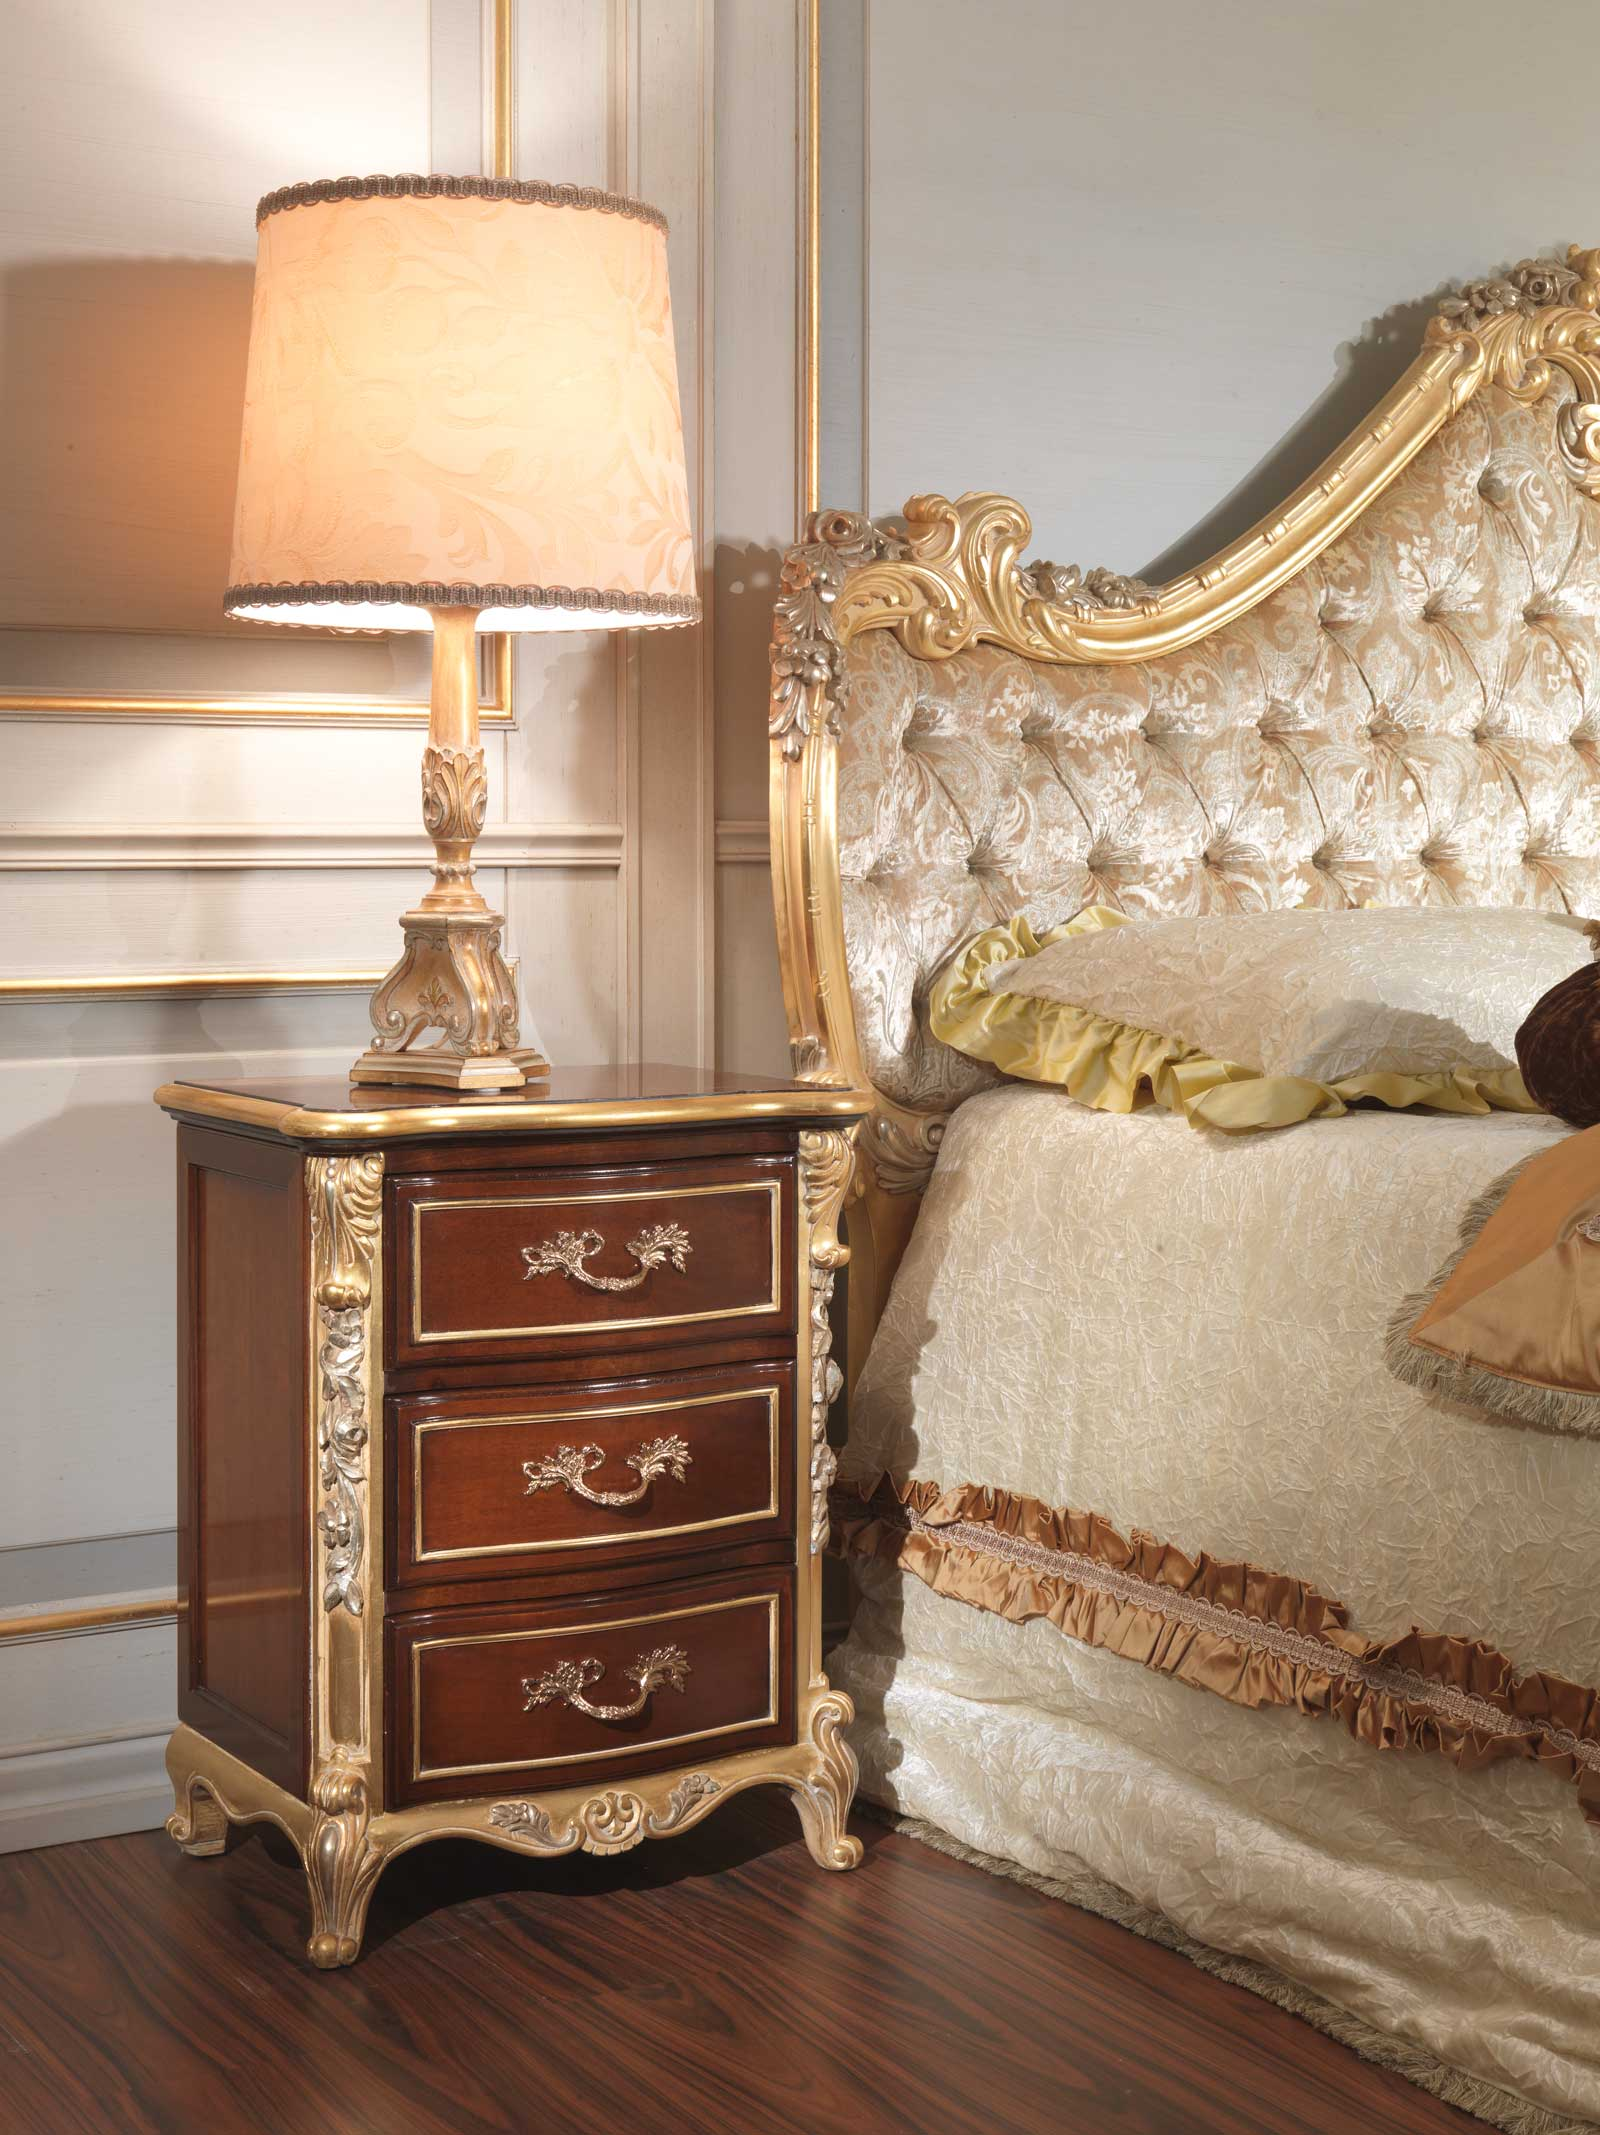 Classic italian bedroom 18th century night table Century bedroom furniture